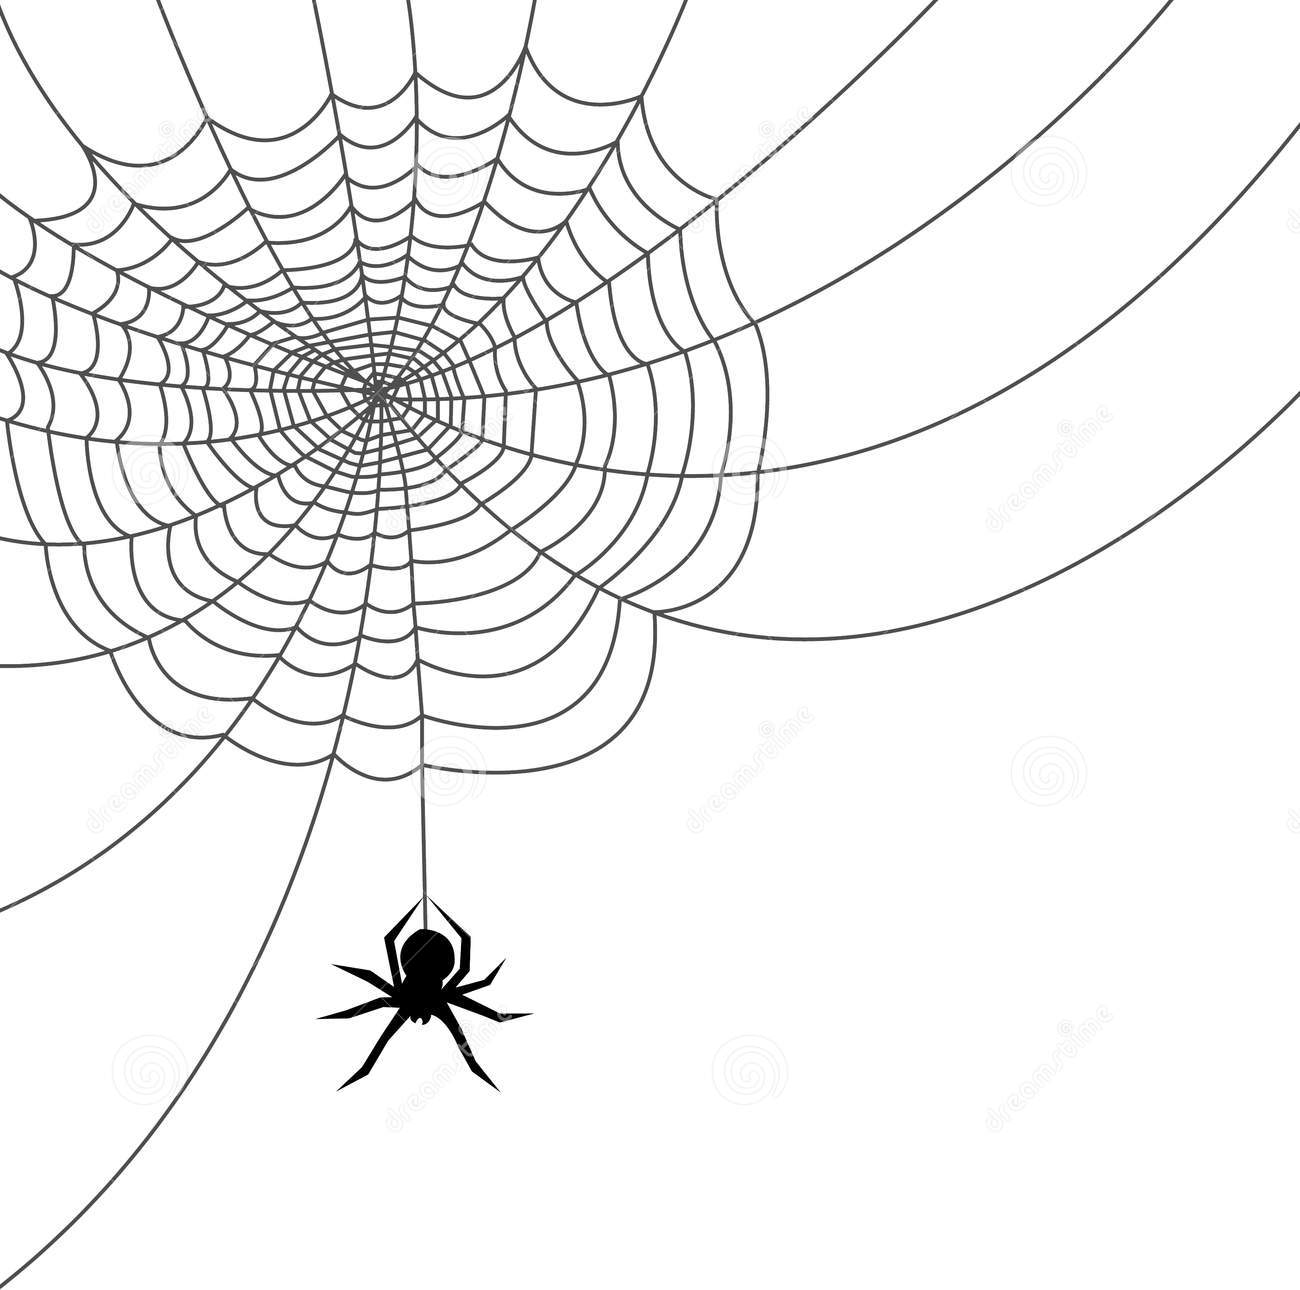 Spider web border clipart free images 6 2.